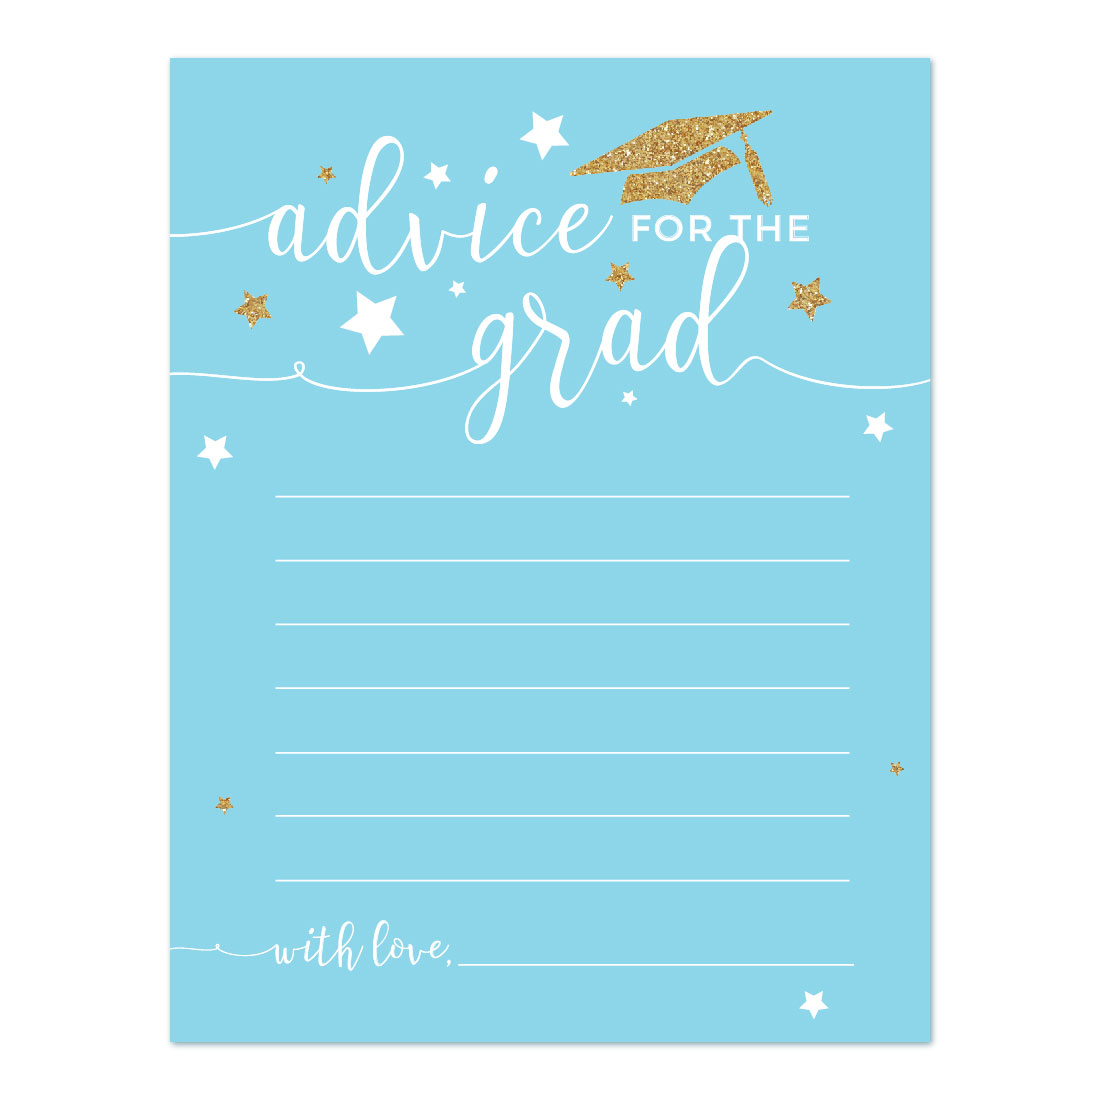 Baby Blue and Gold Glittering Graduation Party, Advice for the Grad Cards, 20-Pack, Games